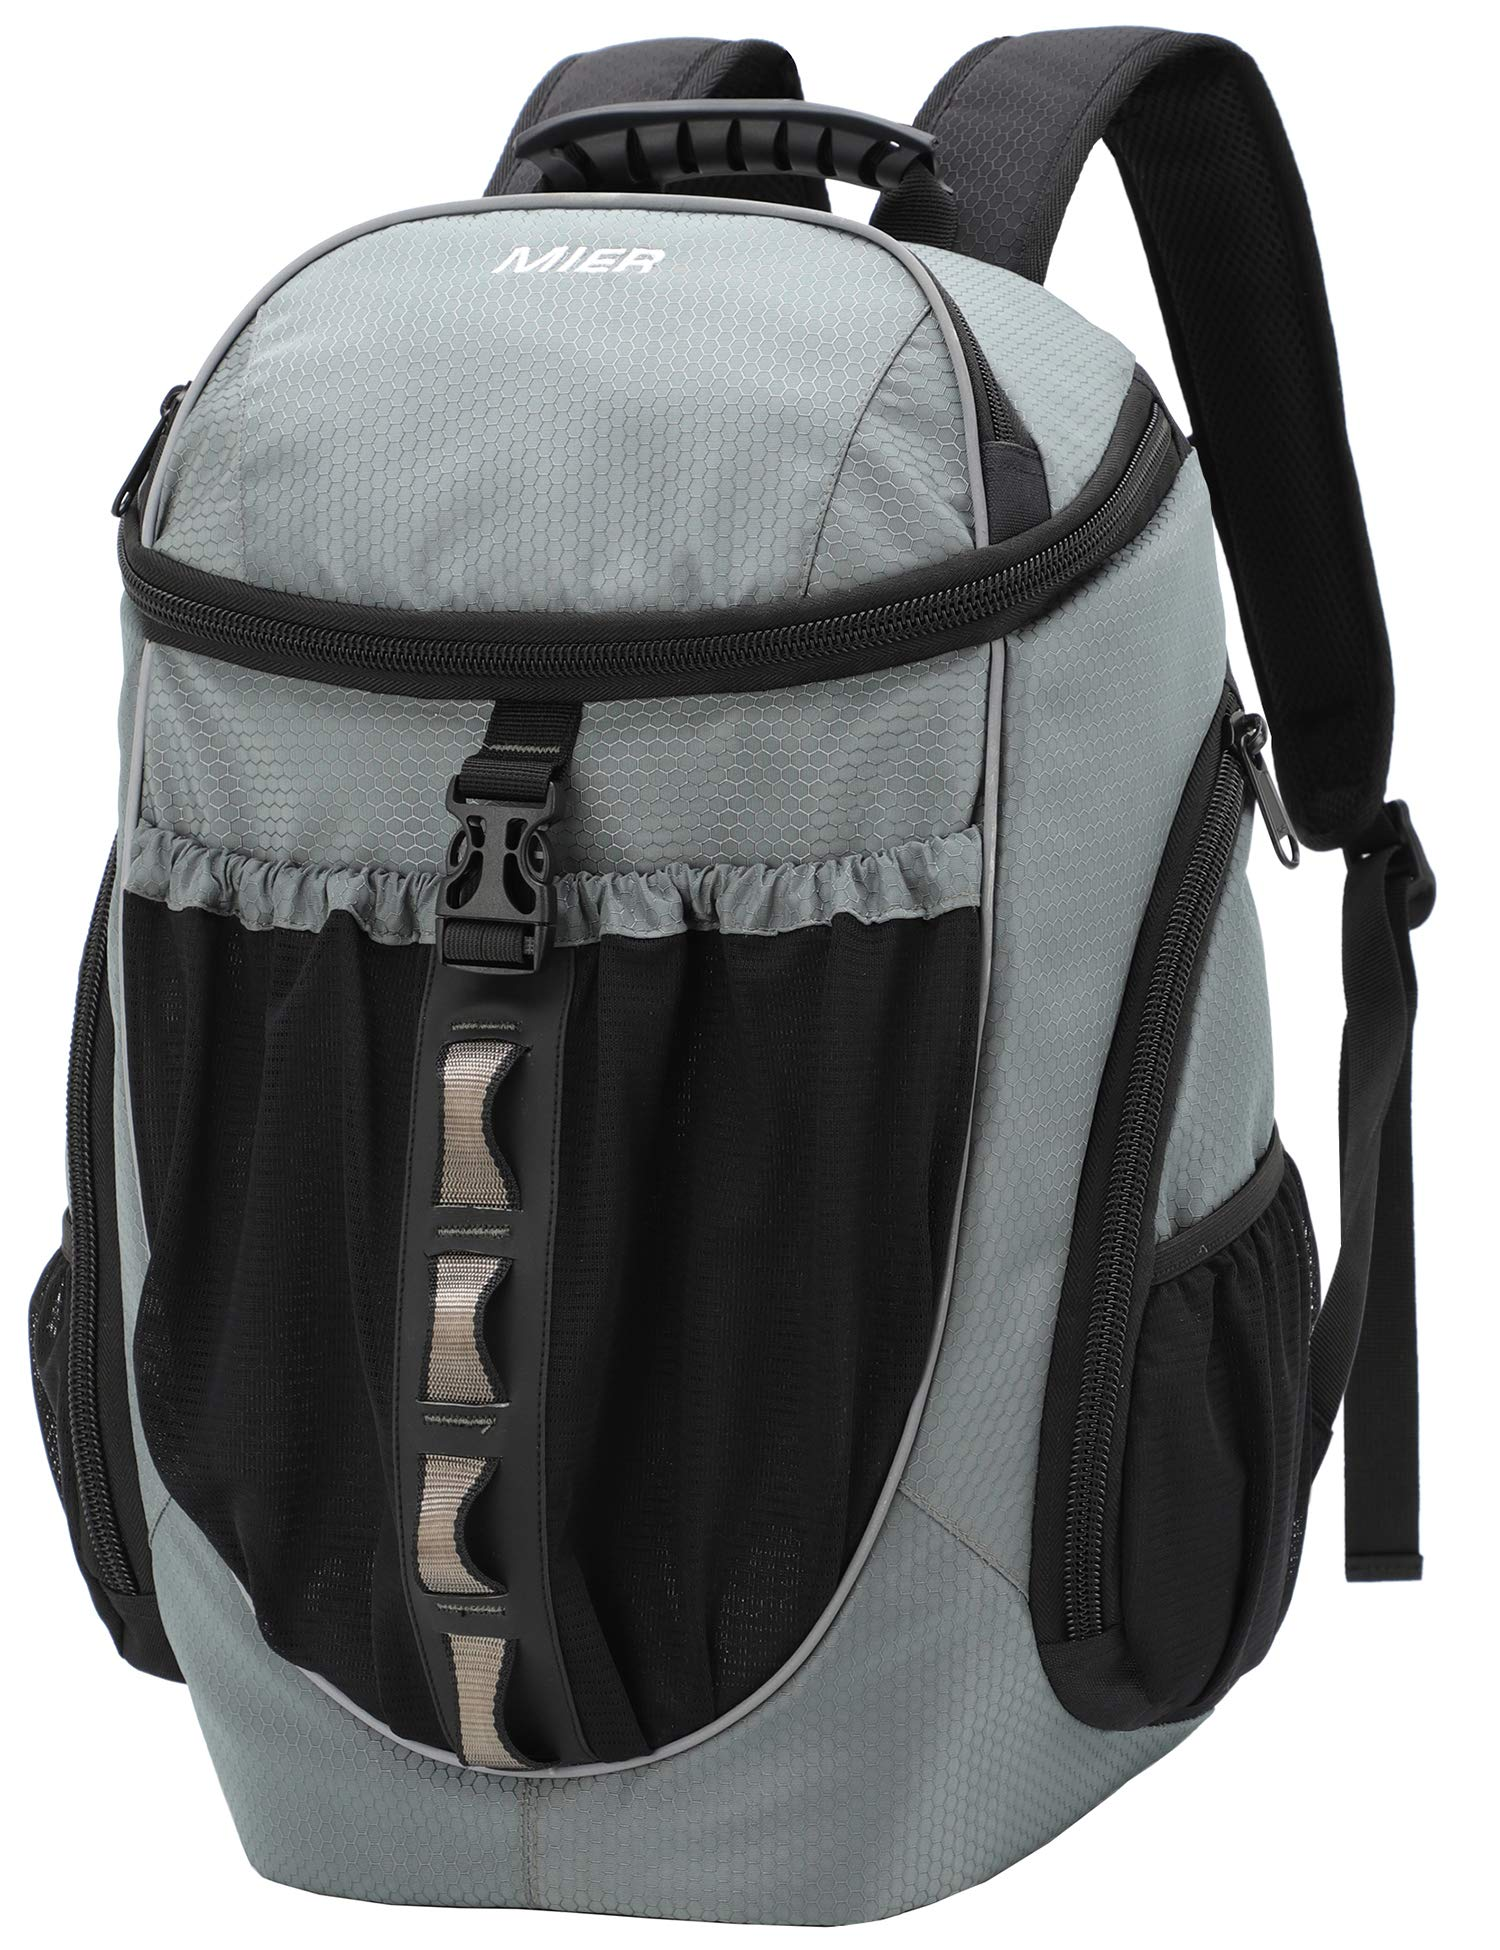 MIER Leakproof Backpack Insulated Compartment